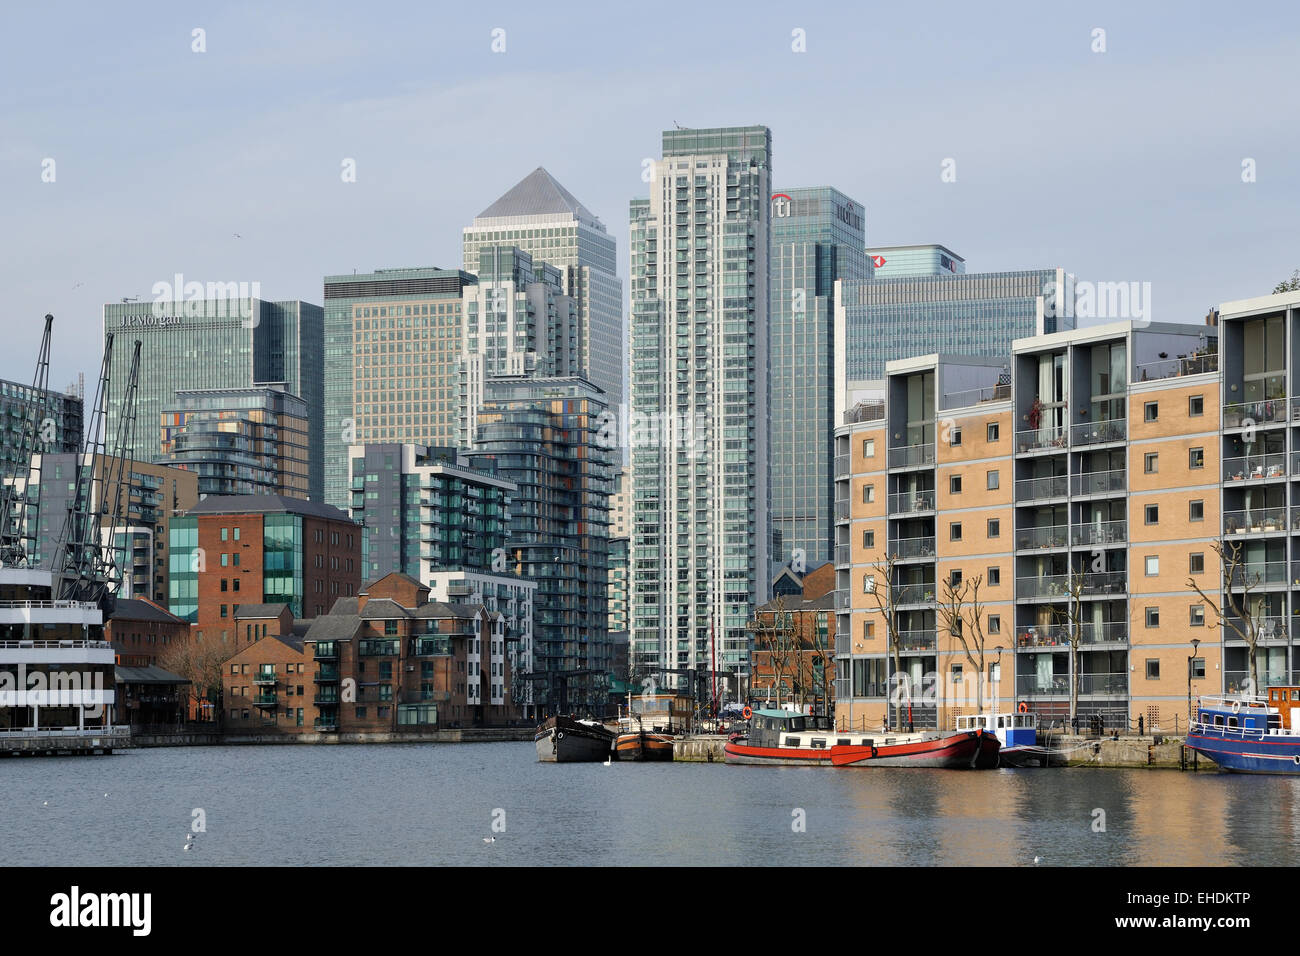 Canary Wharf, London Docklands, viewed from Millwall Outer Dock - Stock Image